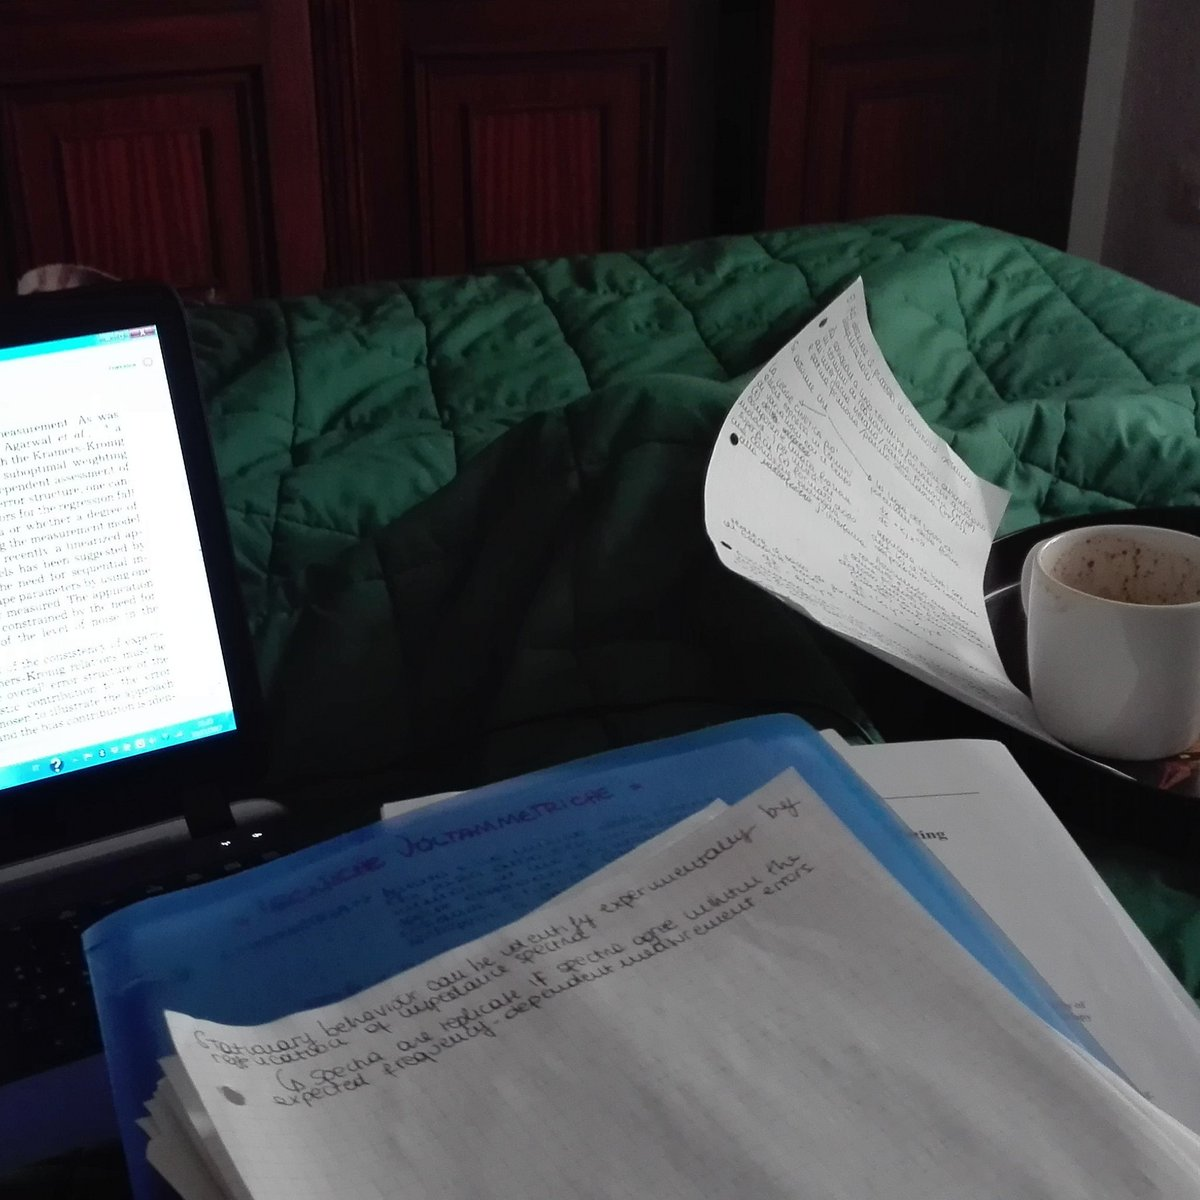 When you are a #PhDstudent, it is #cold, you want to #sleep.  #happysunday #Yeah #research #phdlife<br>http://pic.twitter.com/OyKh6pjsRW